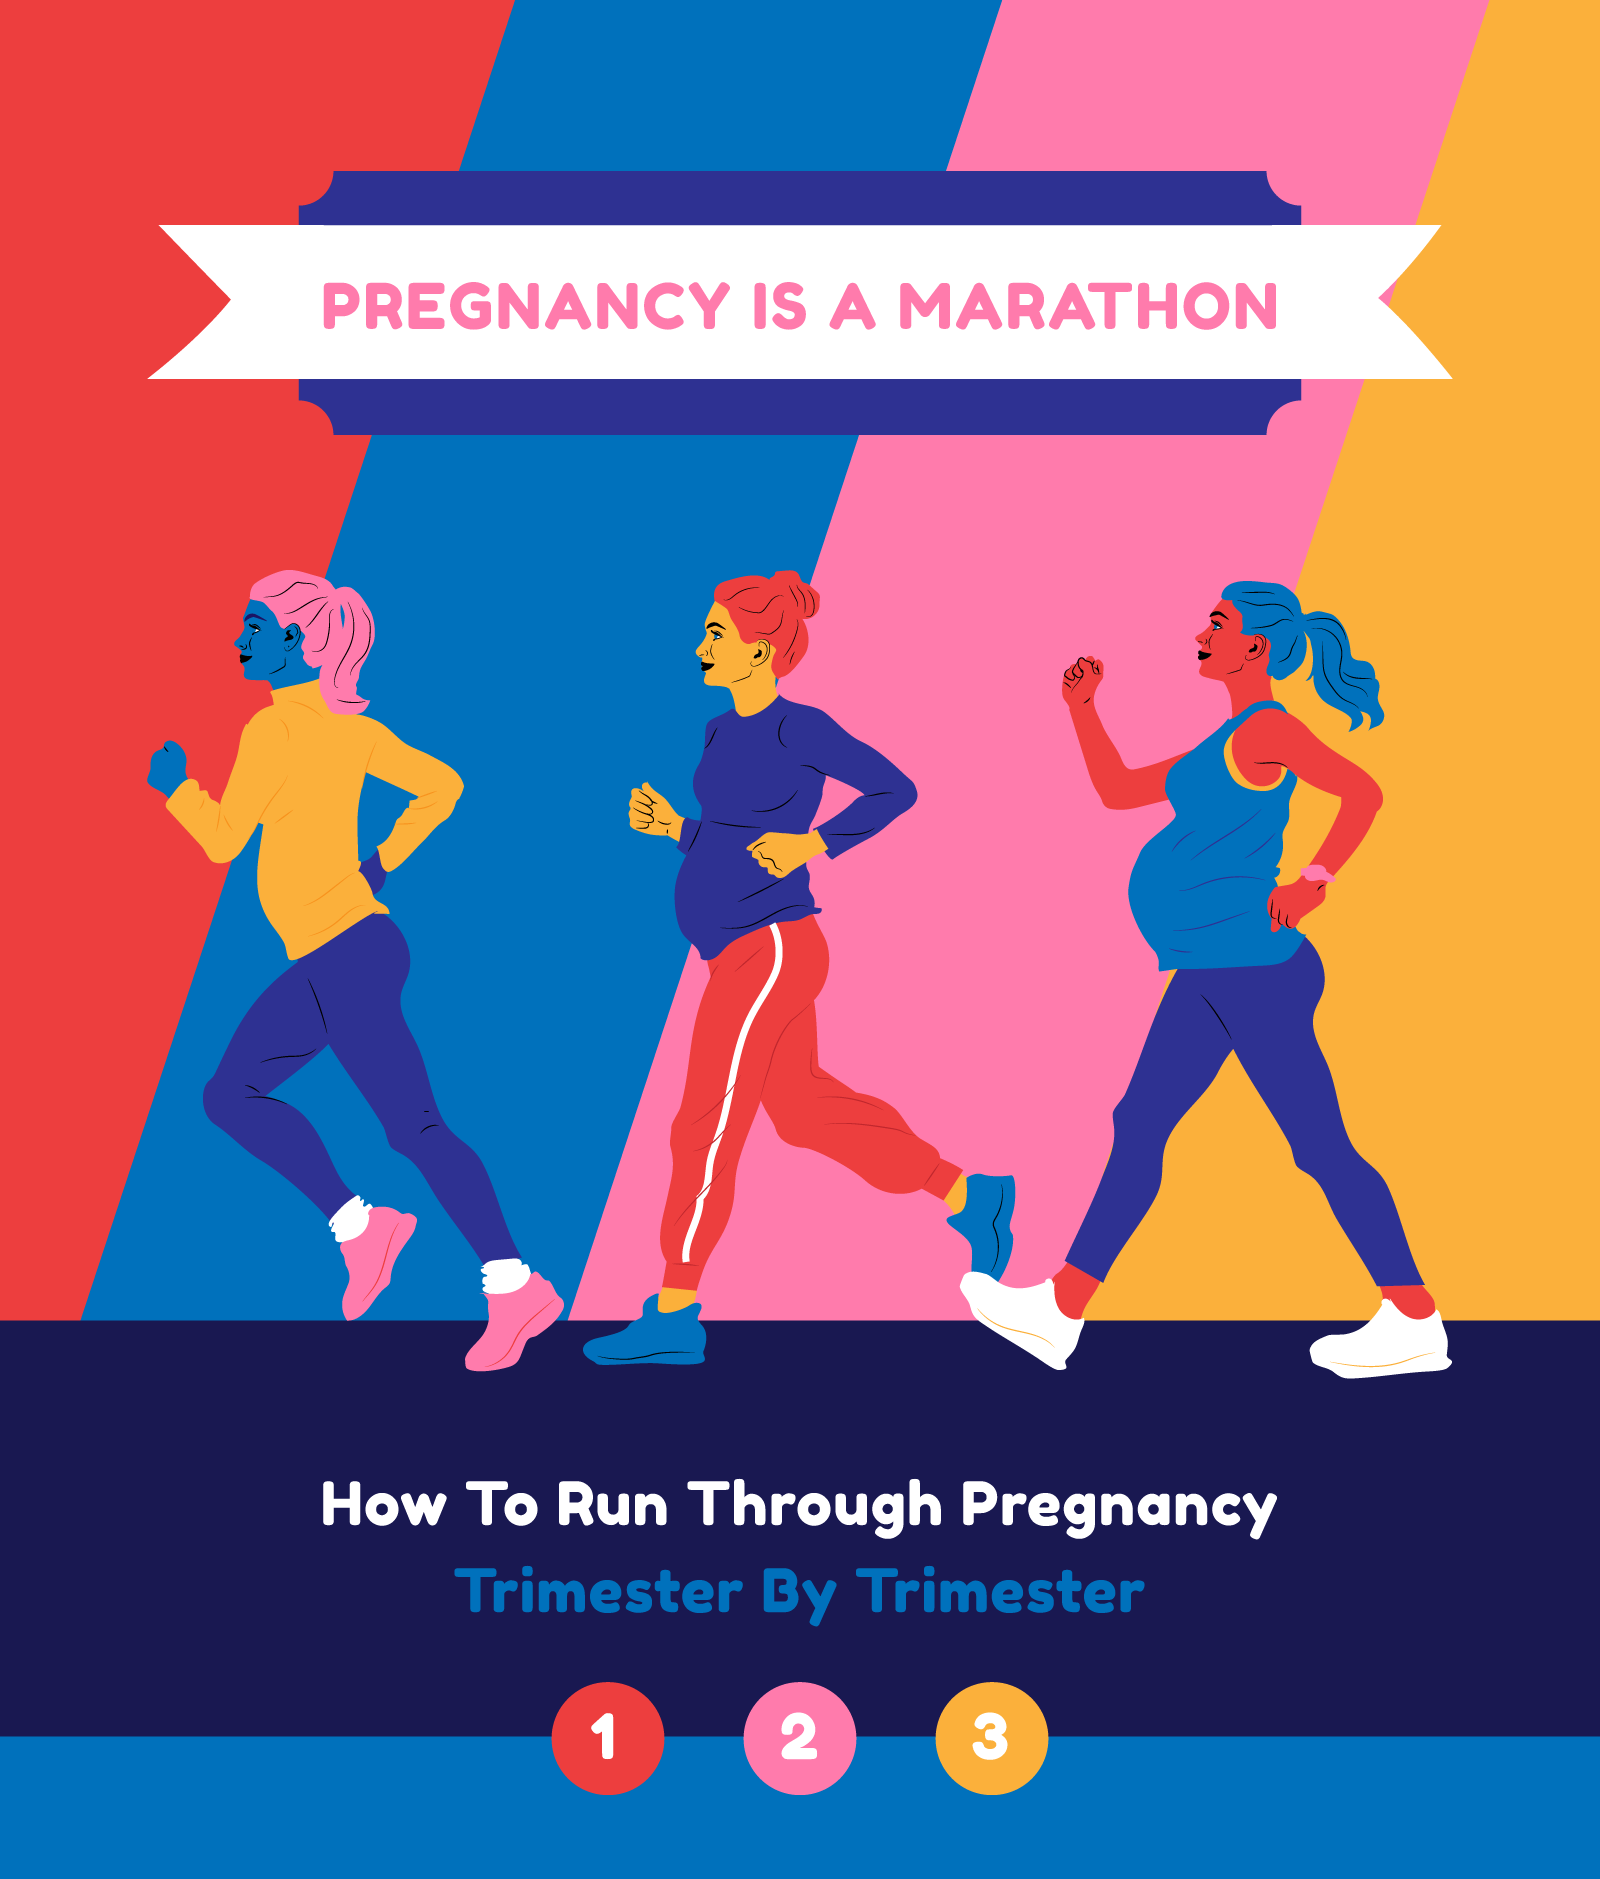 Running Through Pregnancy Trimester by Trimester